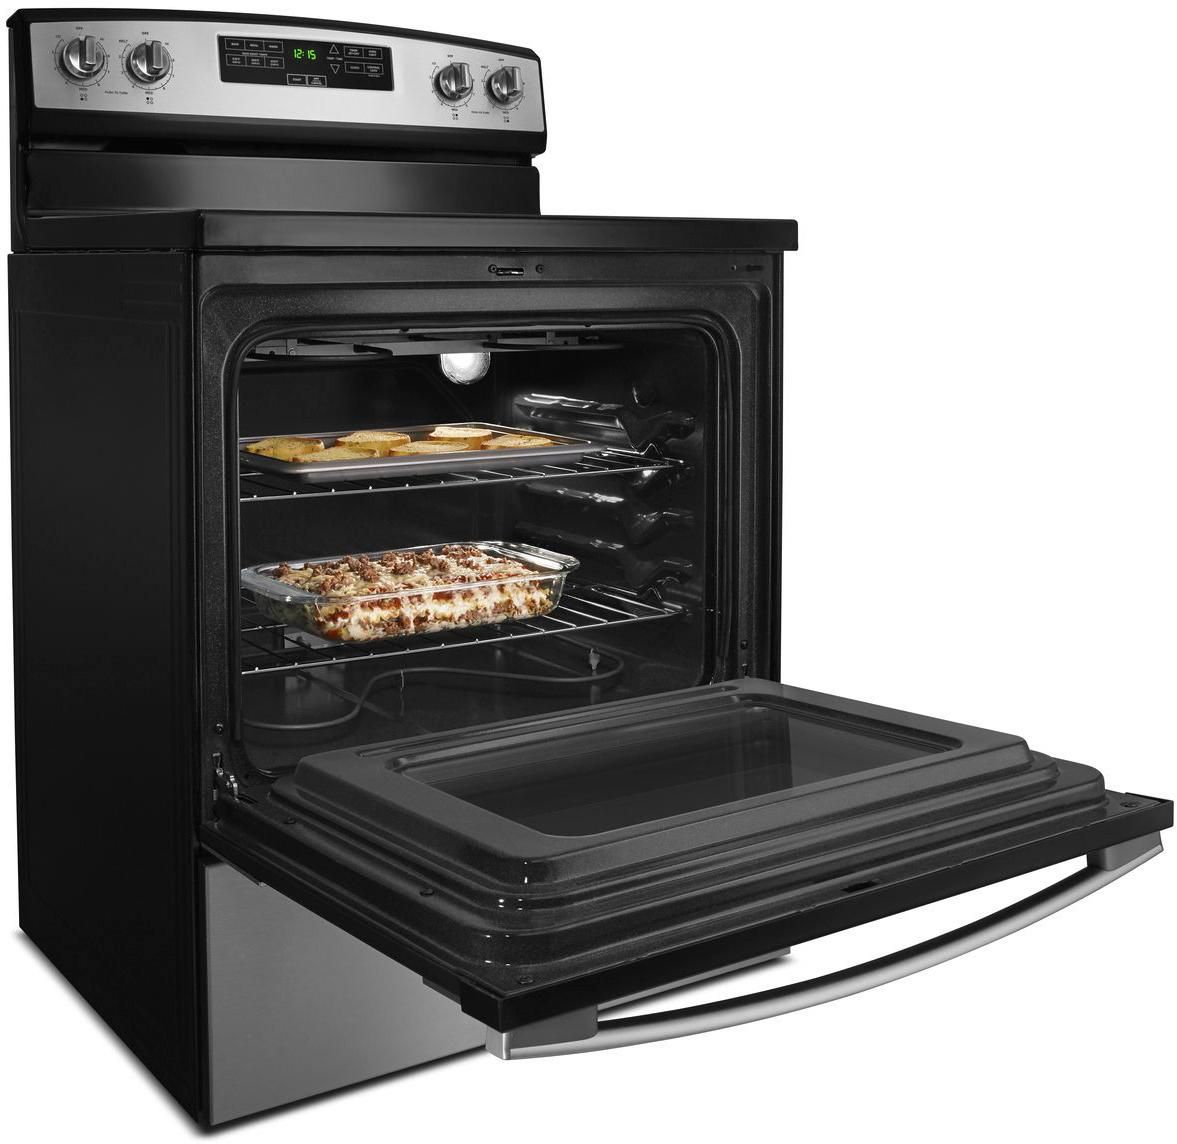 Amana - 4.8 Cu. Ft. Freestanding Electric Range - Stainless steel